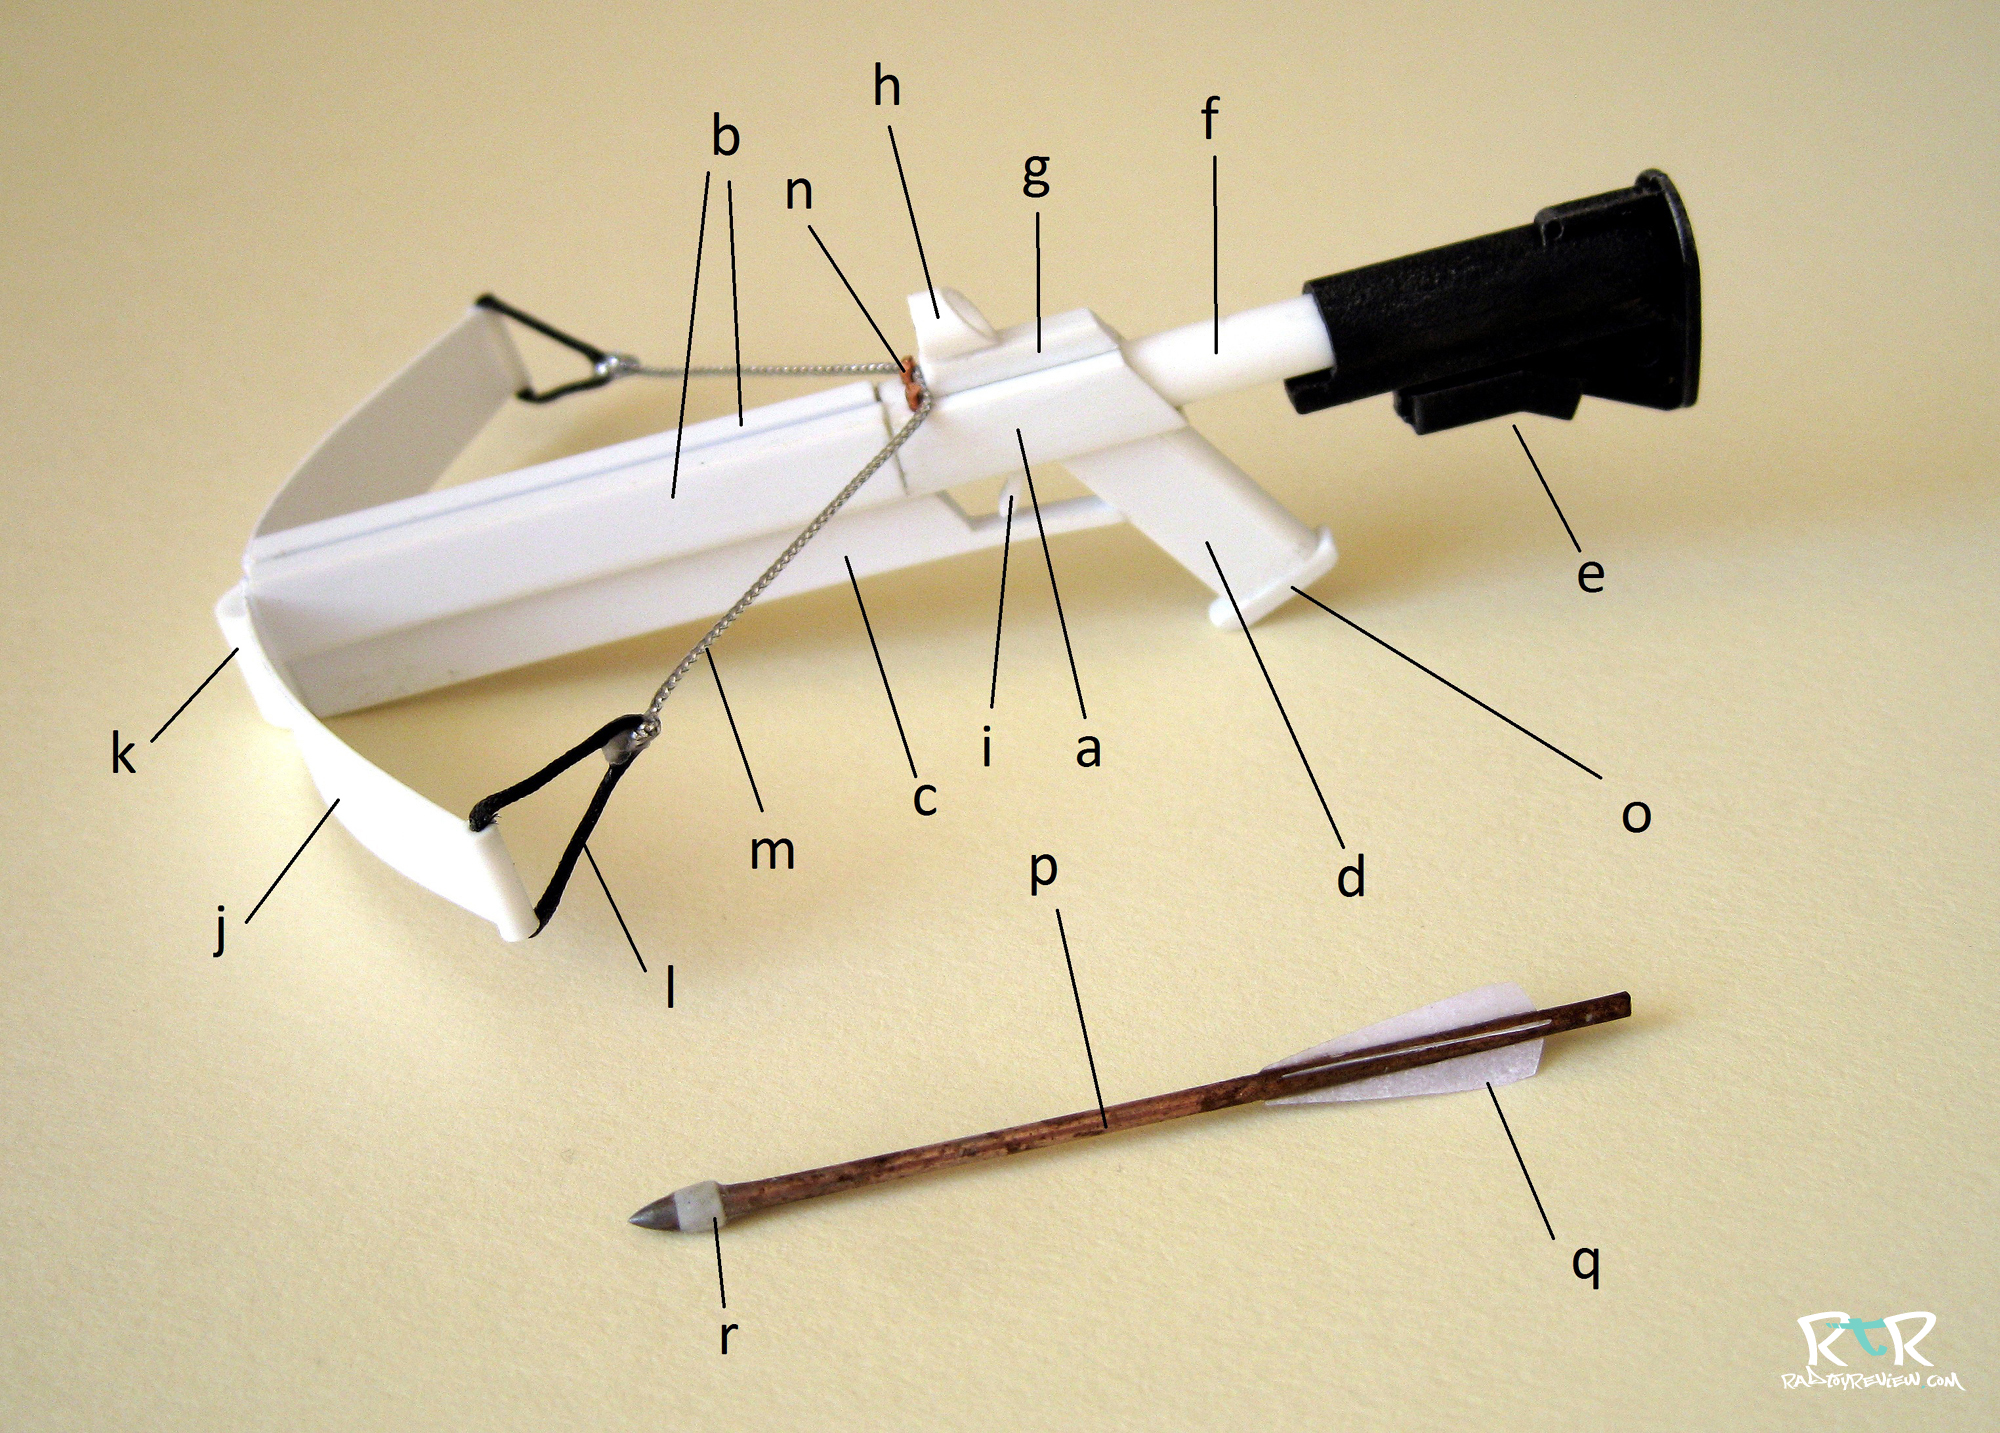 Wooden Crossbow Design Images & Pictures - Becuo